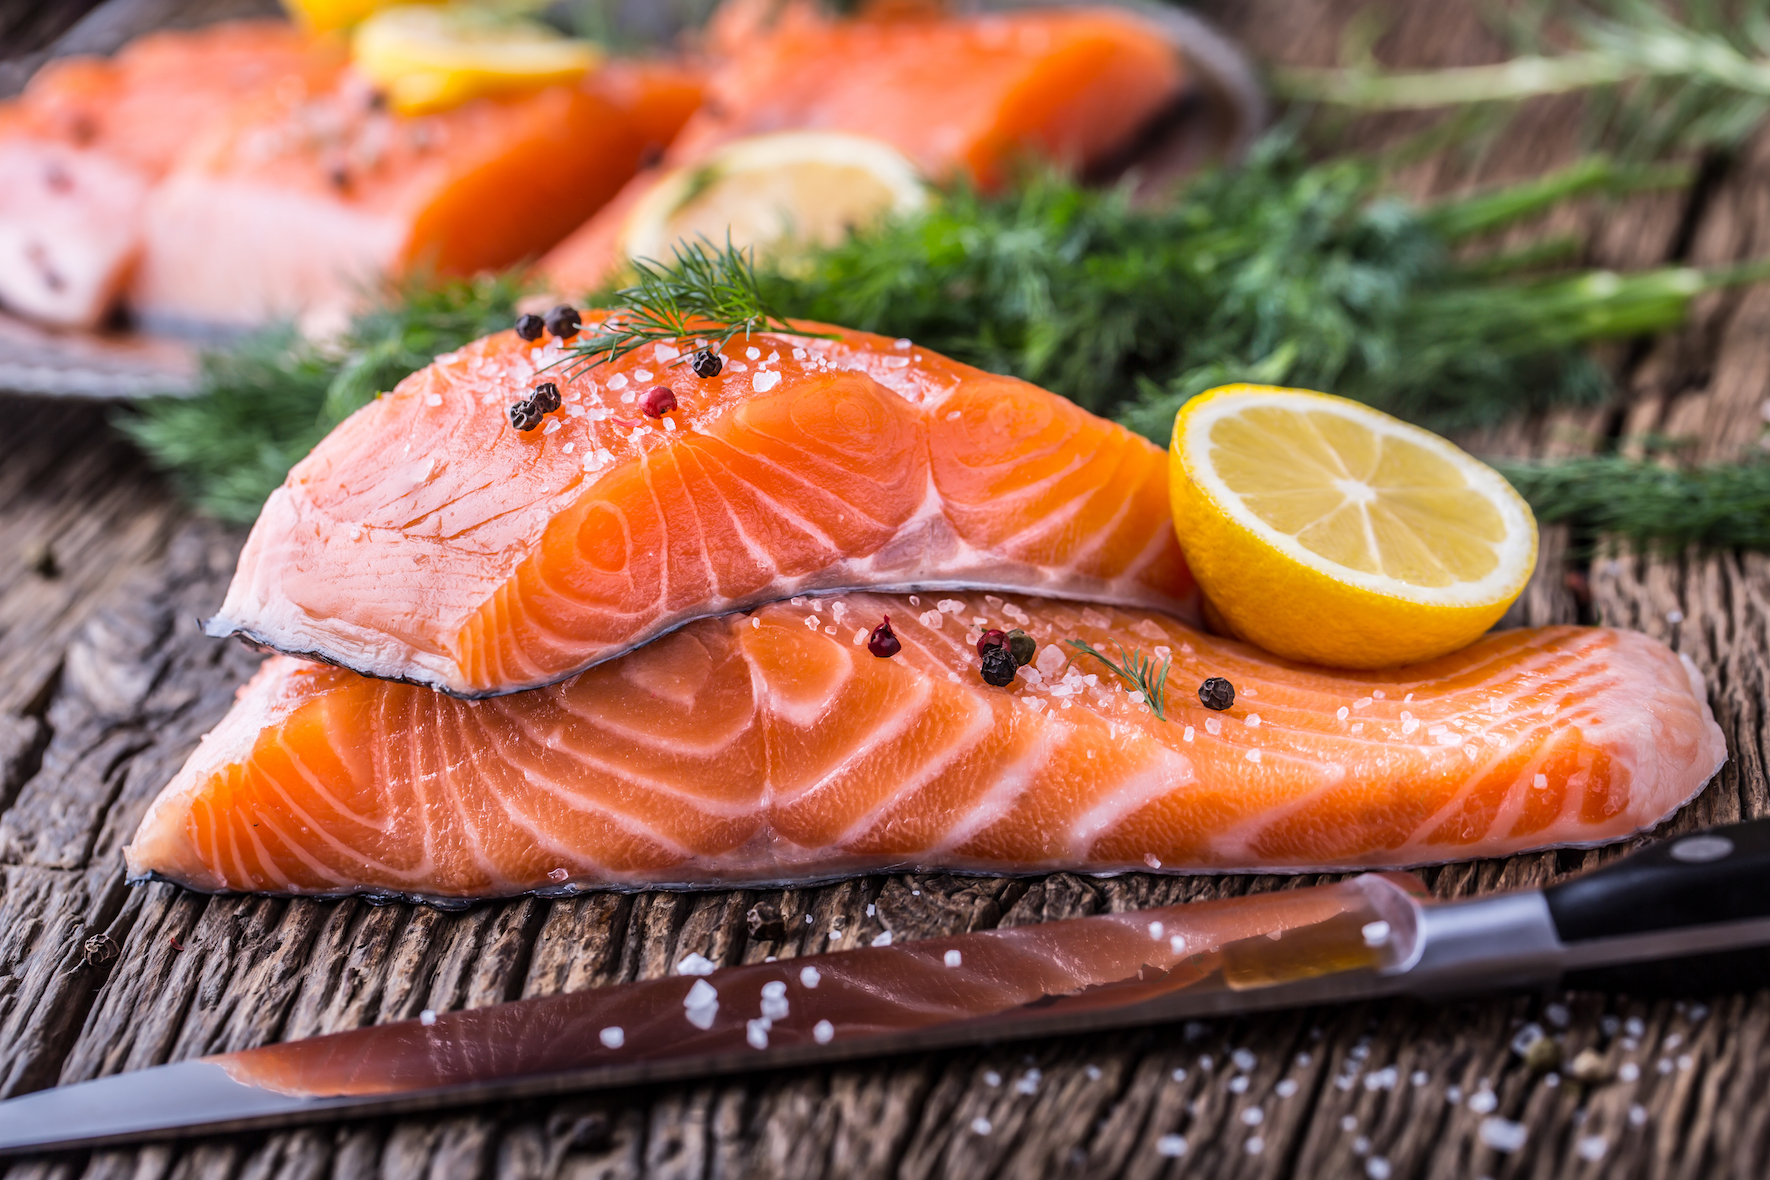 Sea lice have become a major problem for salmon farmers, as salmon all over the world have become overwrought with the parasite.